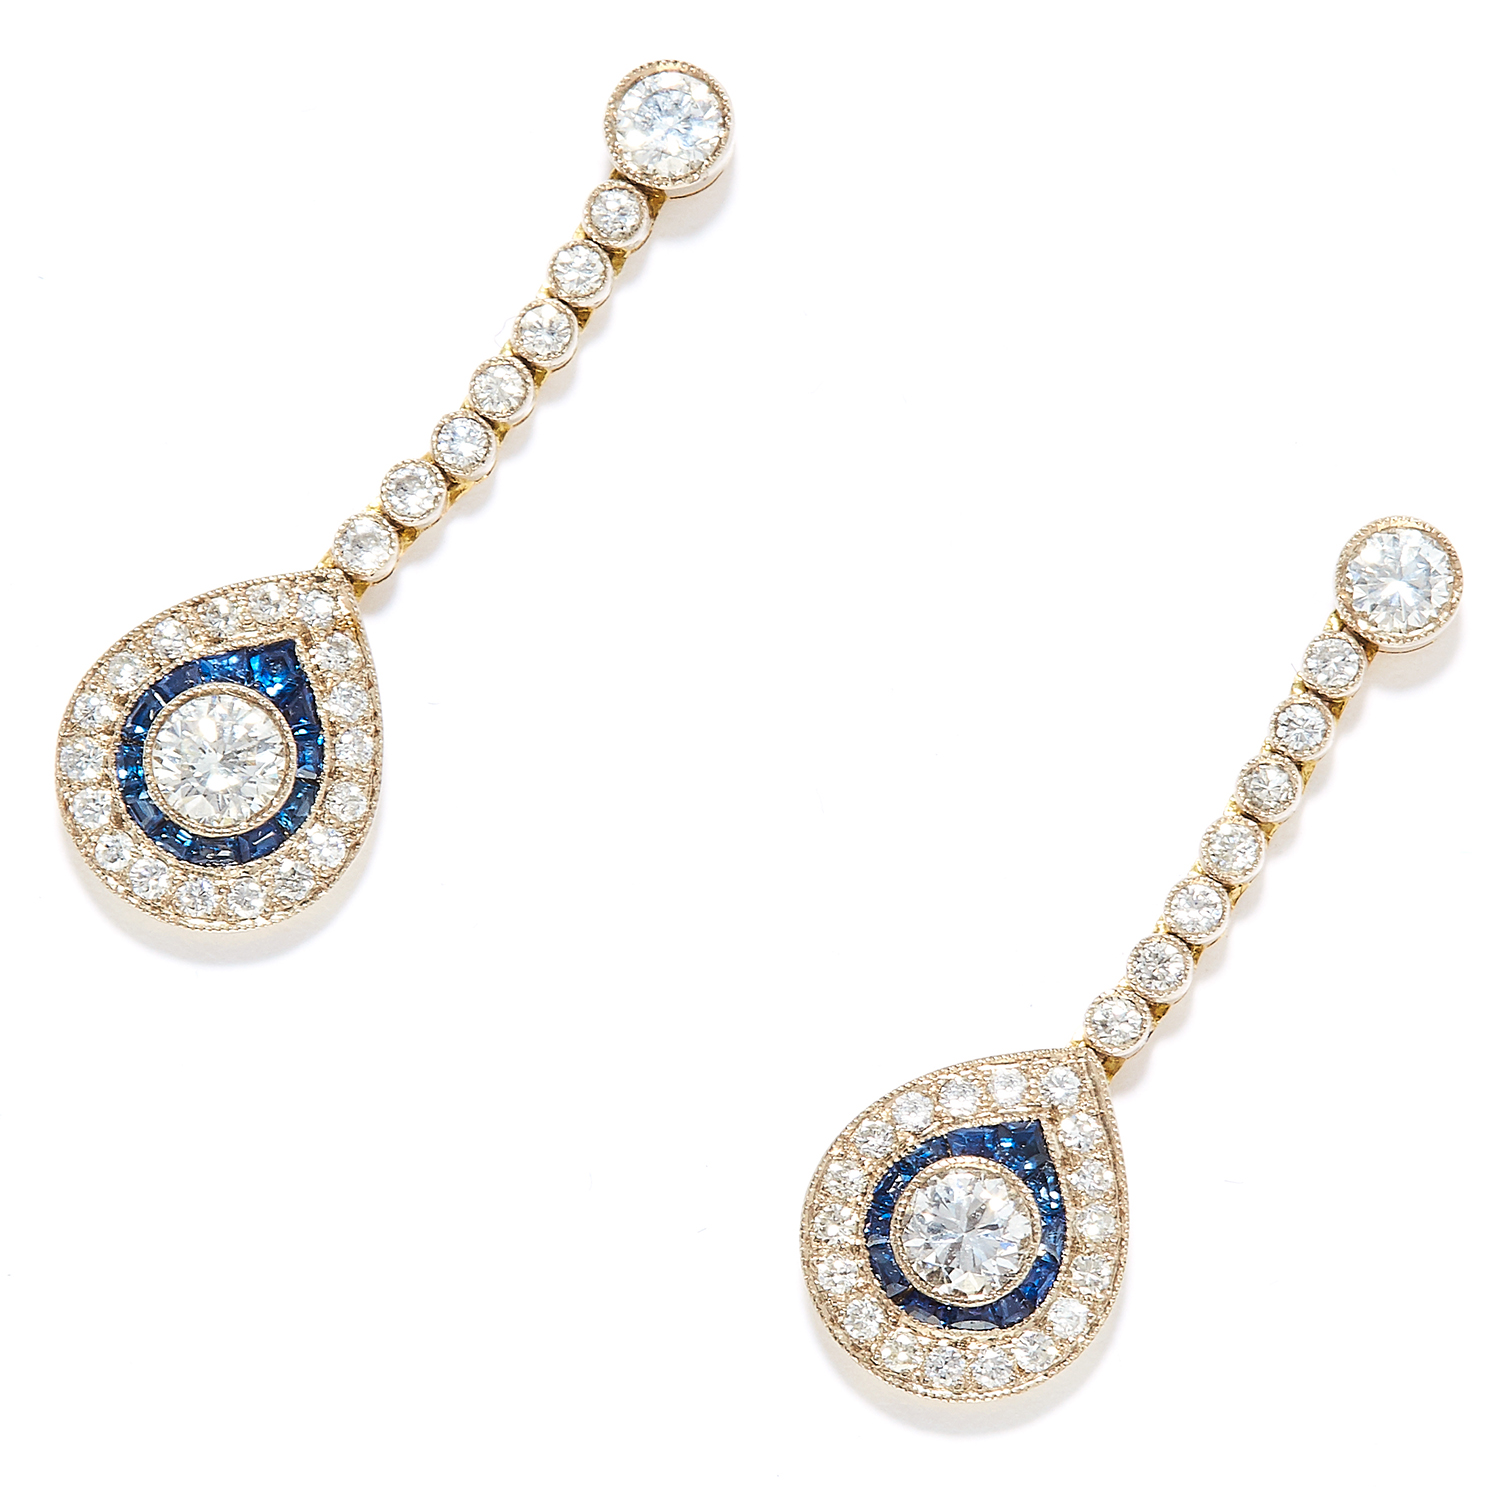 DIAMOND AND SAPPHIRE EARRINGS in yellow gold, each comprising of round cut diamonds totalling